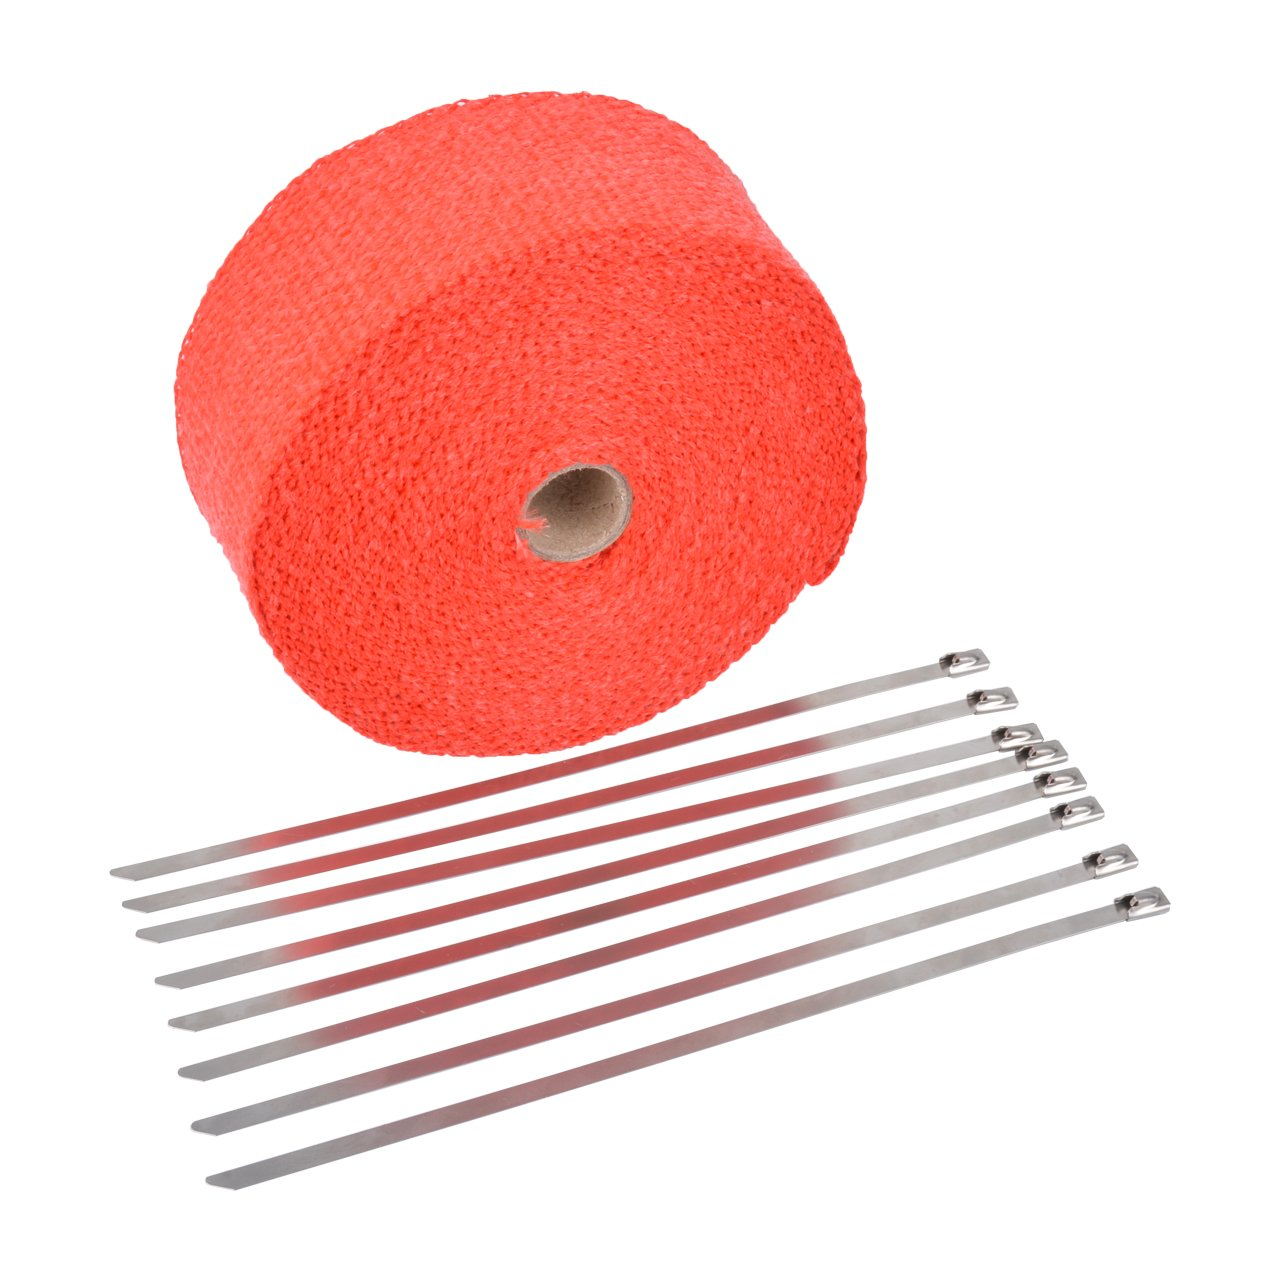 NATGIC 15M Car Motorcycle Exhaust Heat Wrap Tap Header Glassfiber Wrap Kit 2 x50Ft Red 8PCS 11.8 inch Stainless Locking Ties